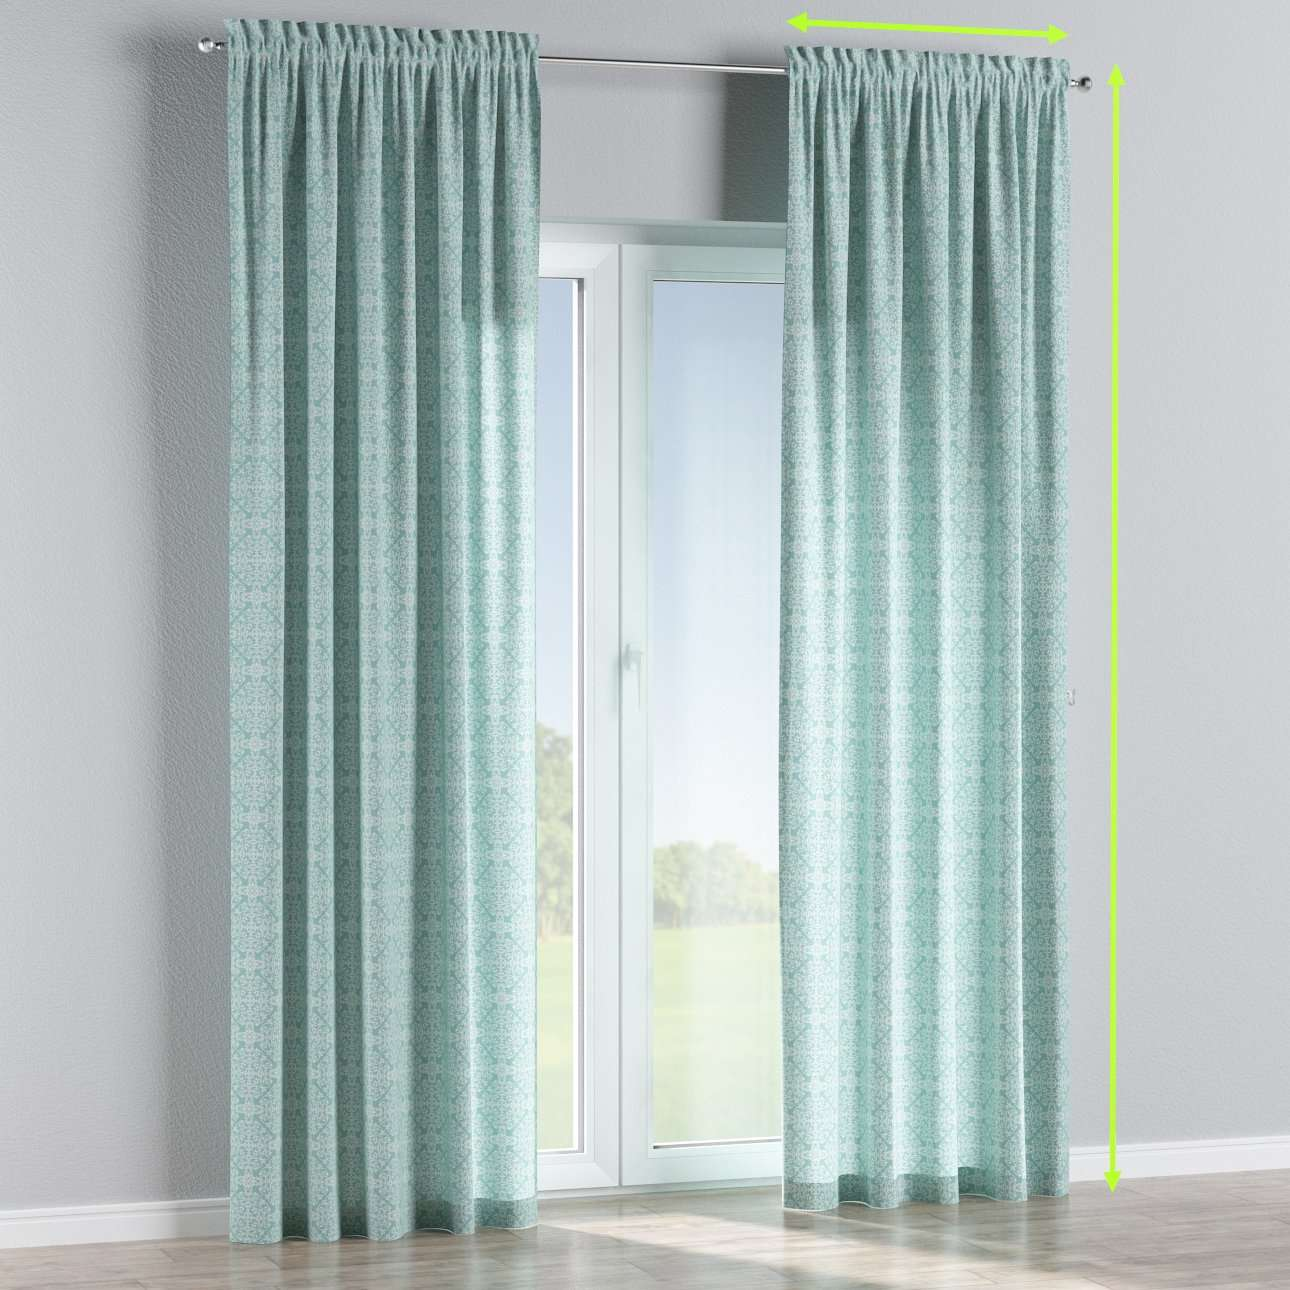 Slot and frill curtains in collection Flowers, fabric: 140-37